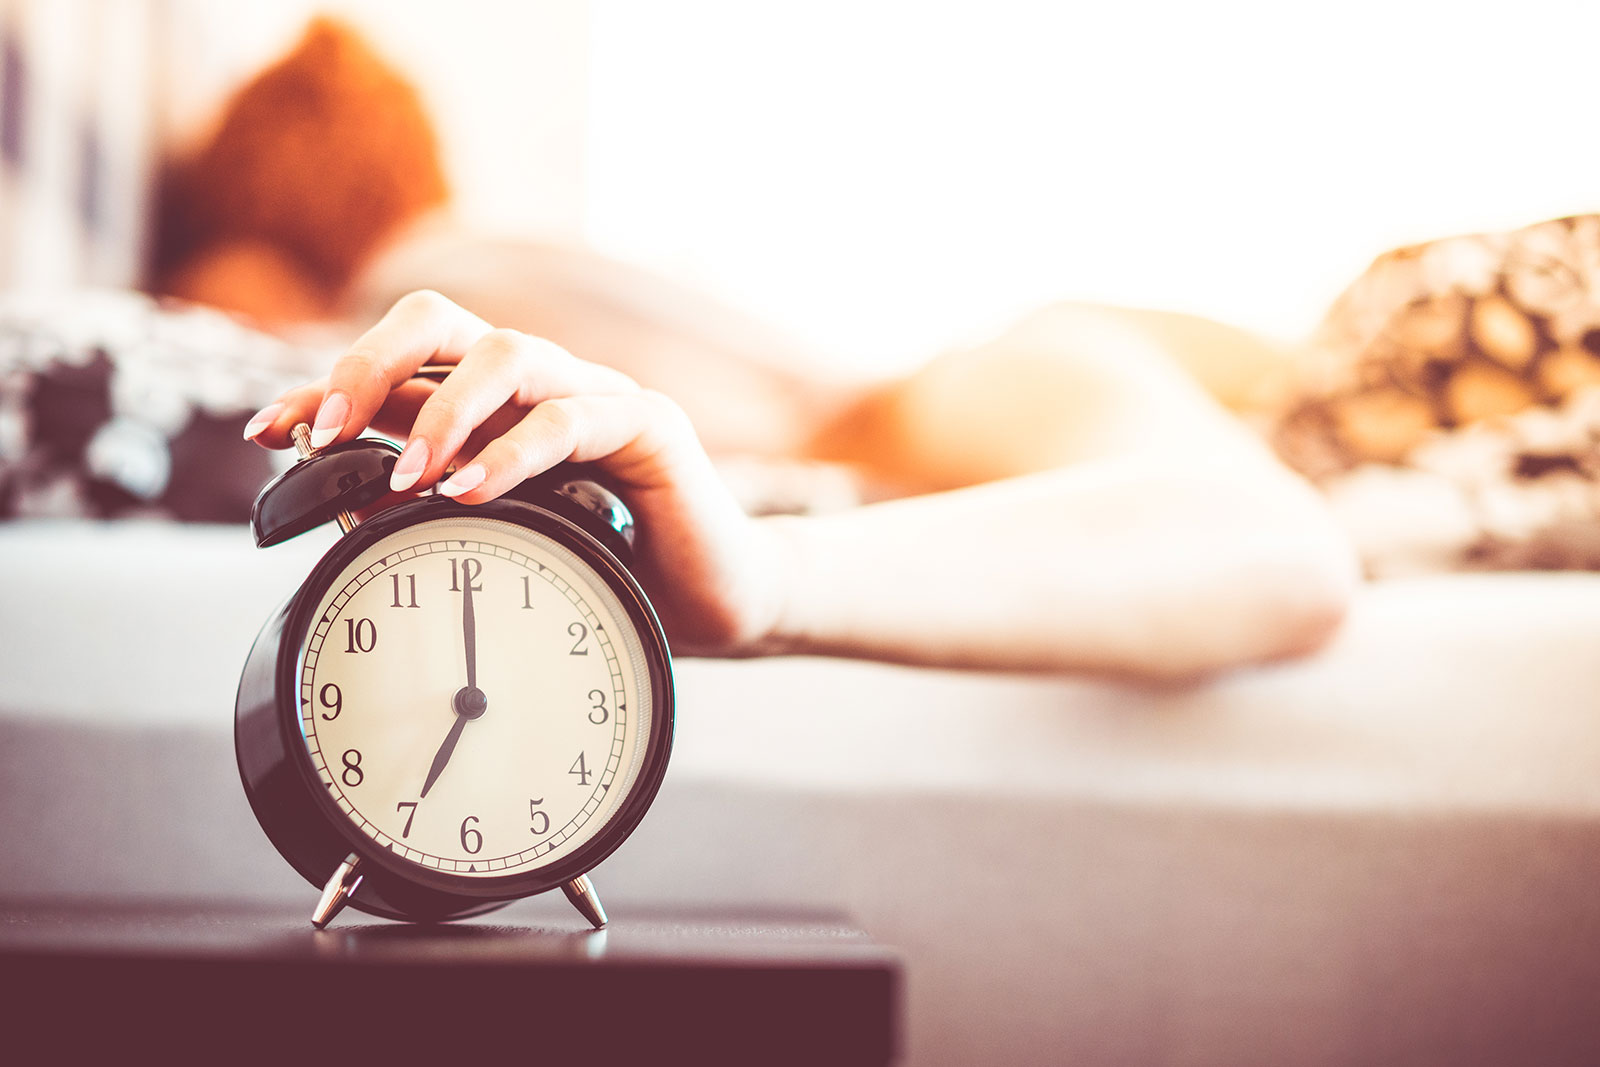 Woman Shutting Off Ringing Alarm Clock From Bed  - woman shutting off ringing alarm clock from bed picjumbo com - Young Woman Walking Alone in Prague Streets